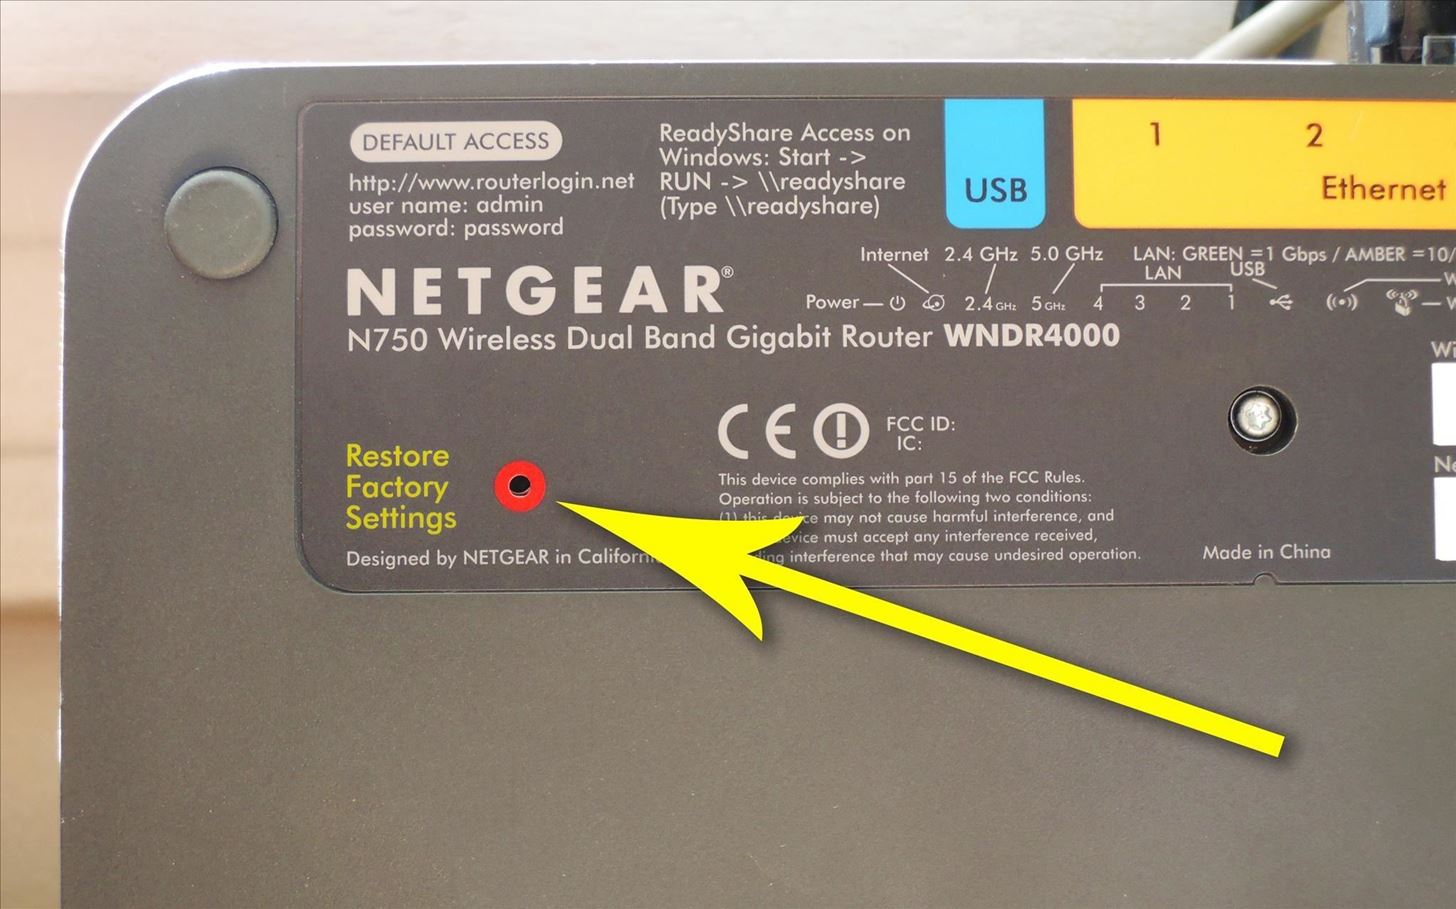 How To Access Your Router When You Have Forget The Password